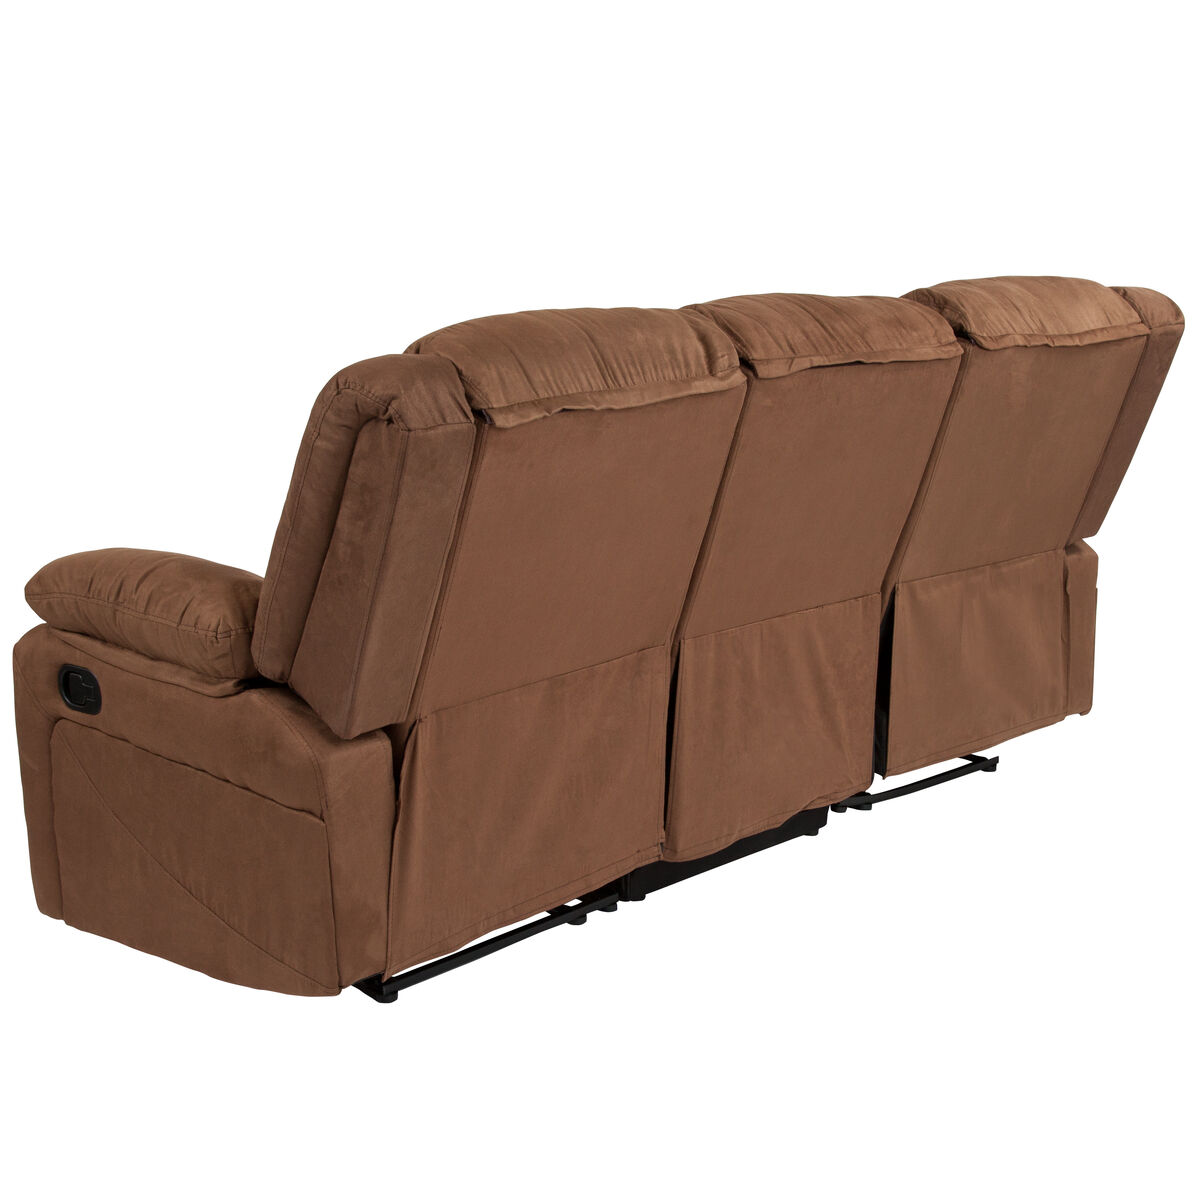 Our Harmony Series Chocolate Brown Microfiber Sofa With Two Built In Recliners Is On